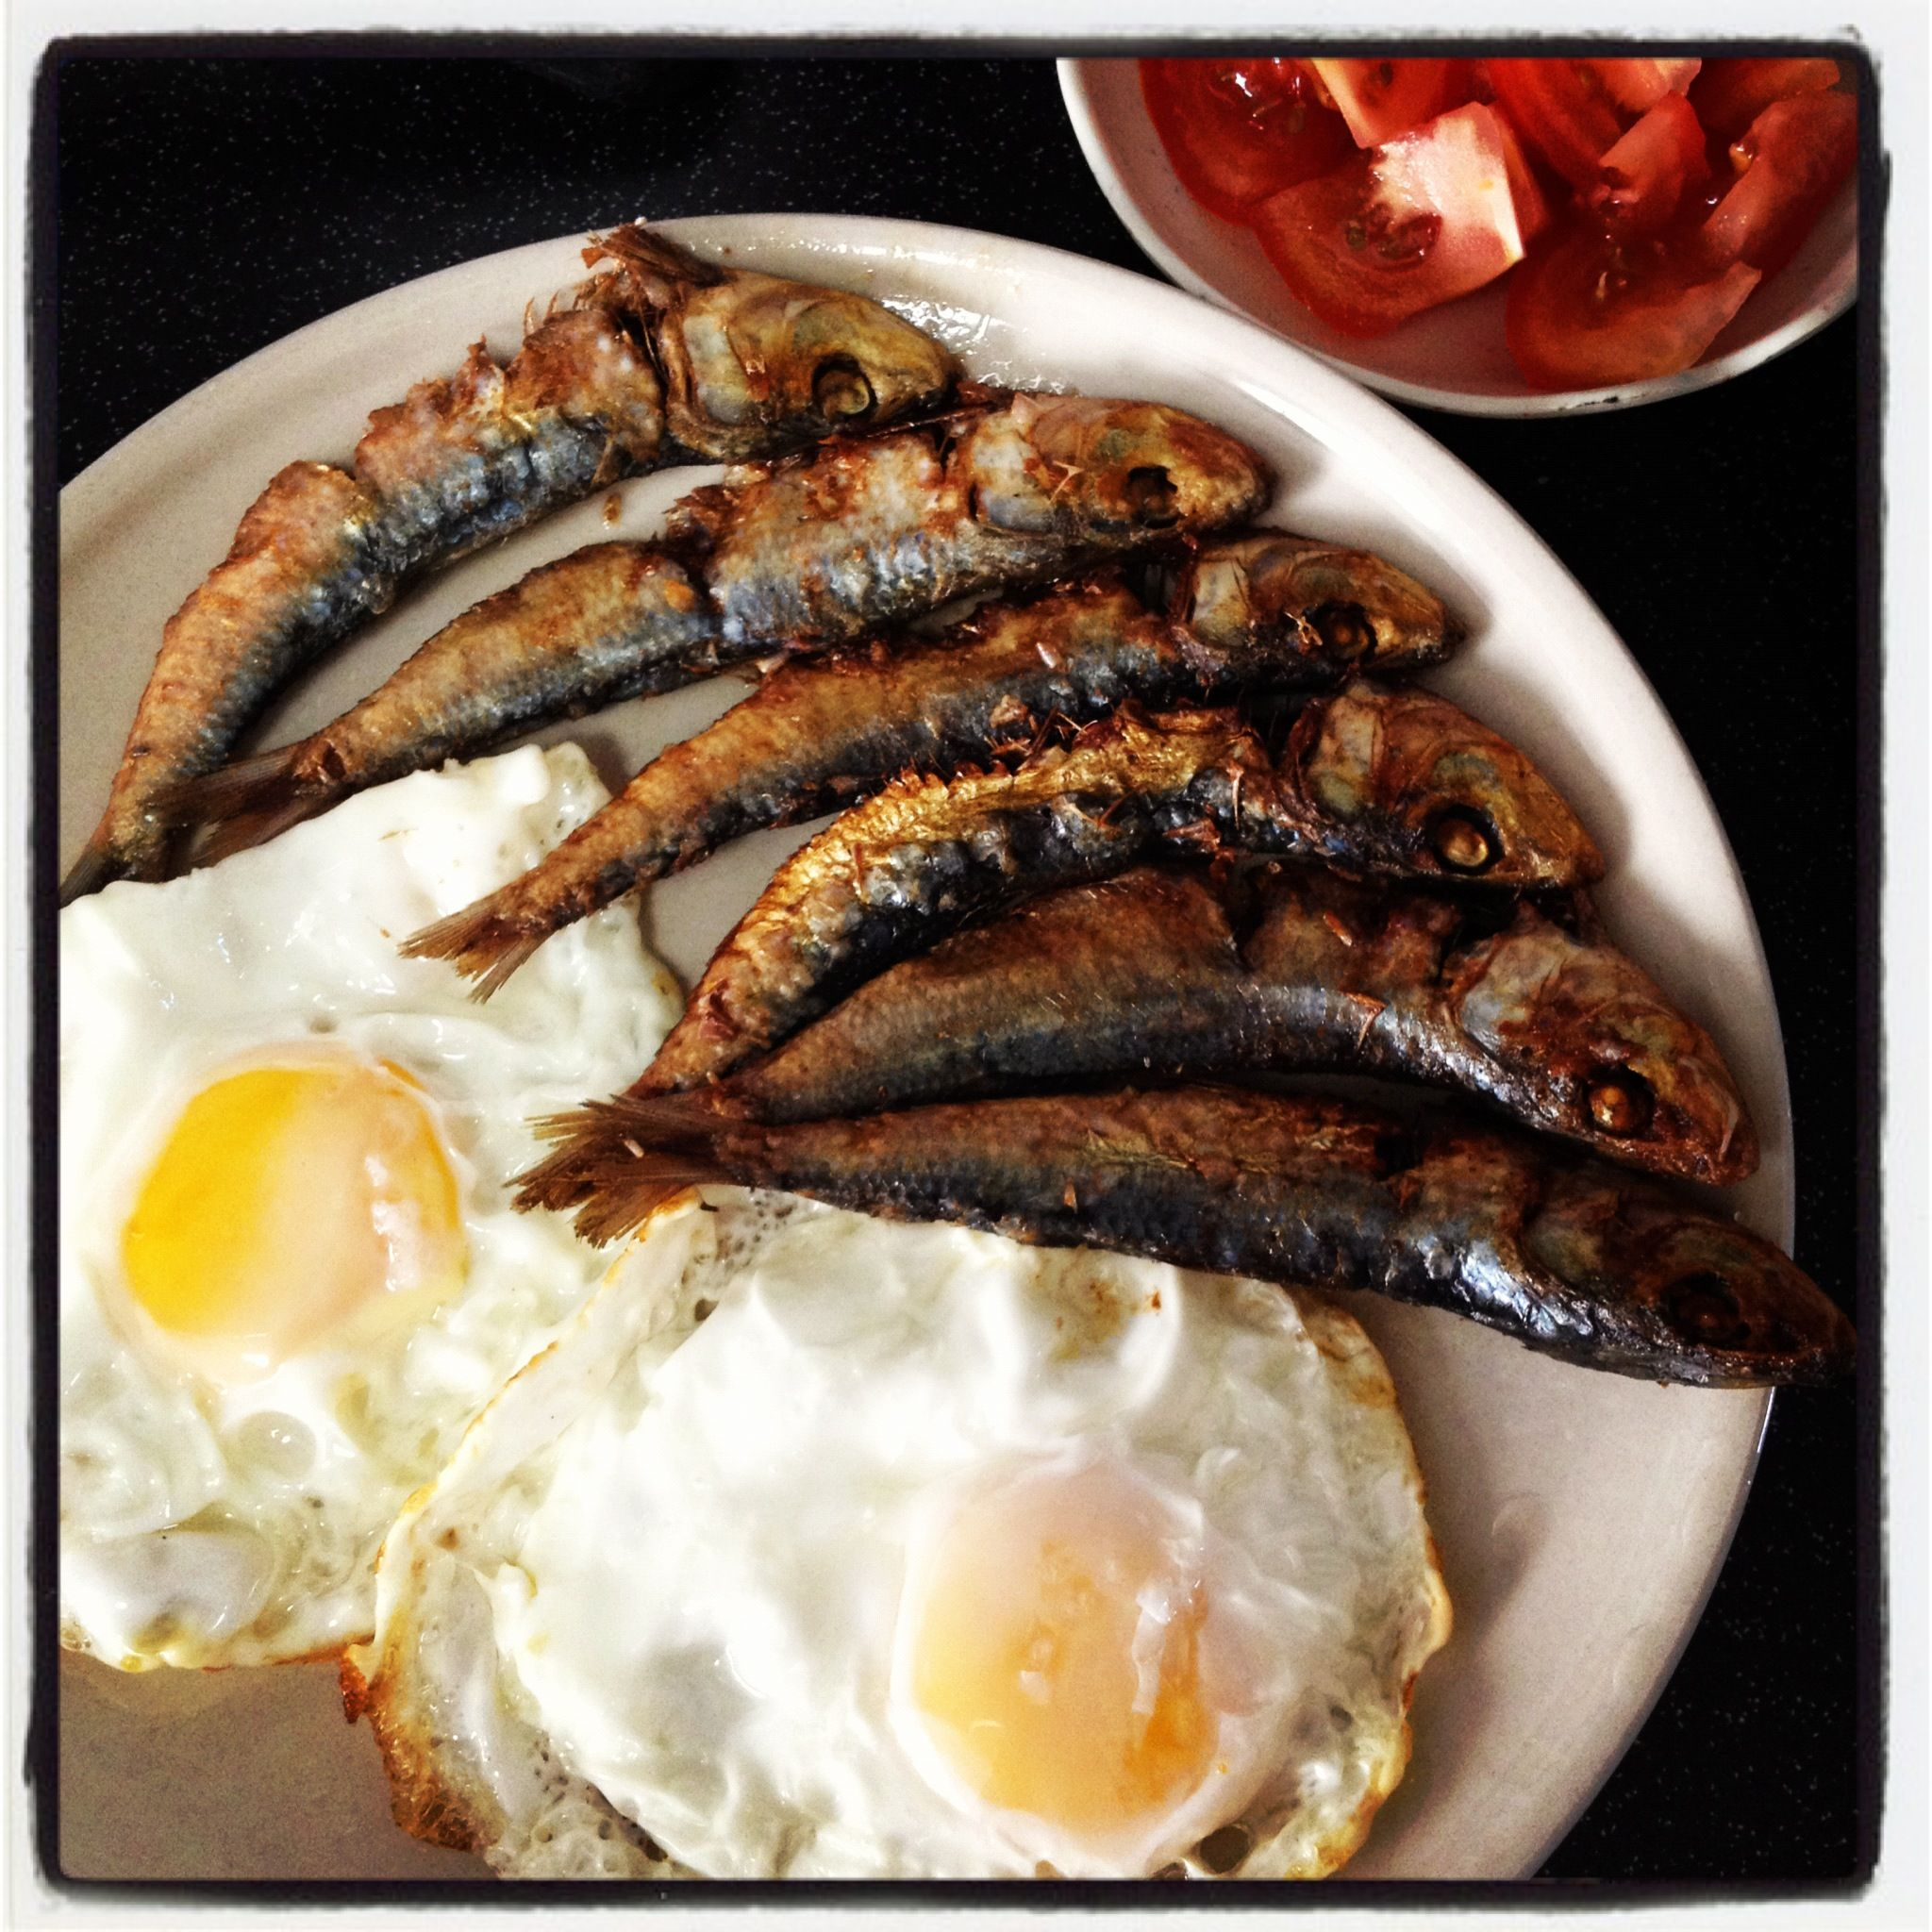 Tuyo dried fish my favorite filipino foods pinterest fish pinoy breakfast tuyo with eggs on top of garlic frie rice and crushed tomatoes on the side forumfinder Image collections